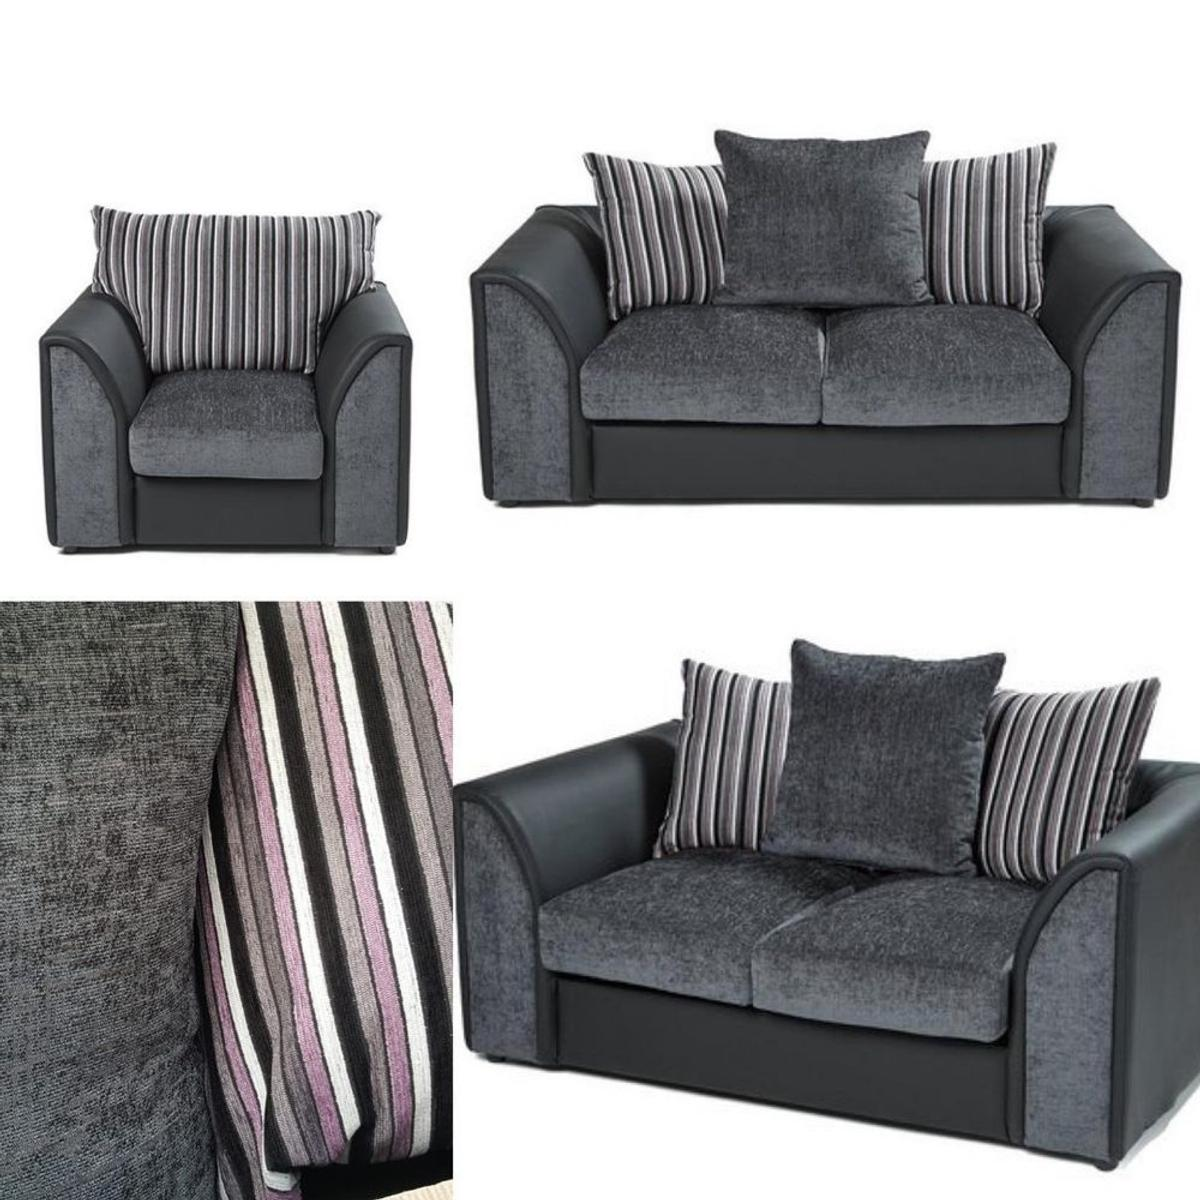 Cool 1 3 Seater Couch Sofa Black Grey F Leather In M350Bn Onthecornerstone Fun Painted Chair Ideas Images Onthecornerstoneorg